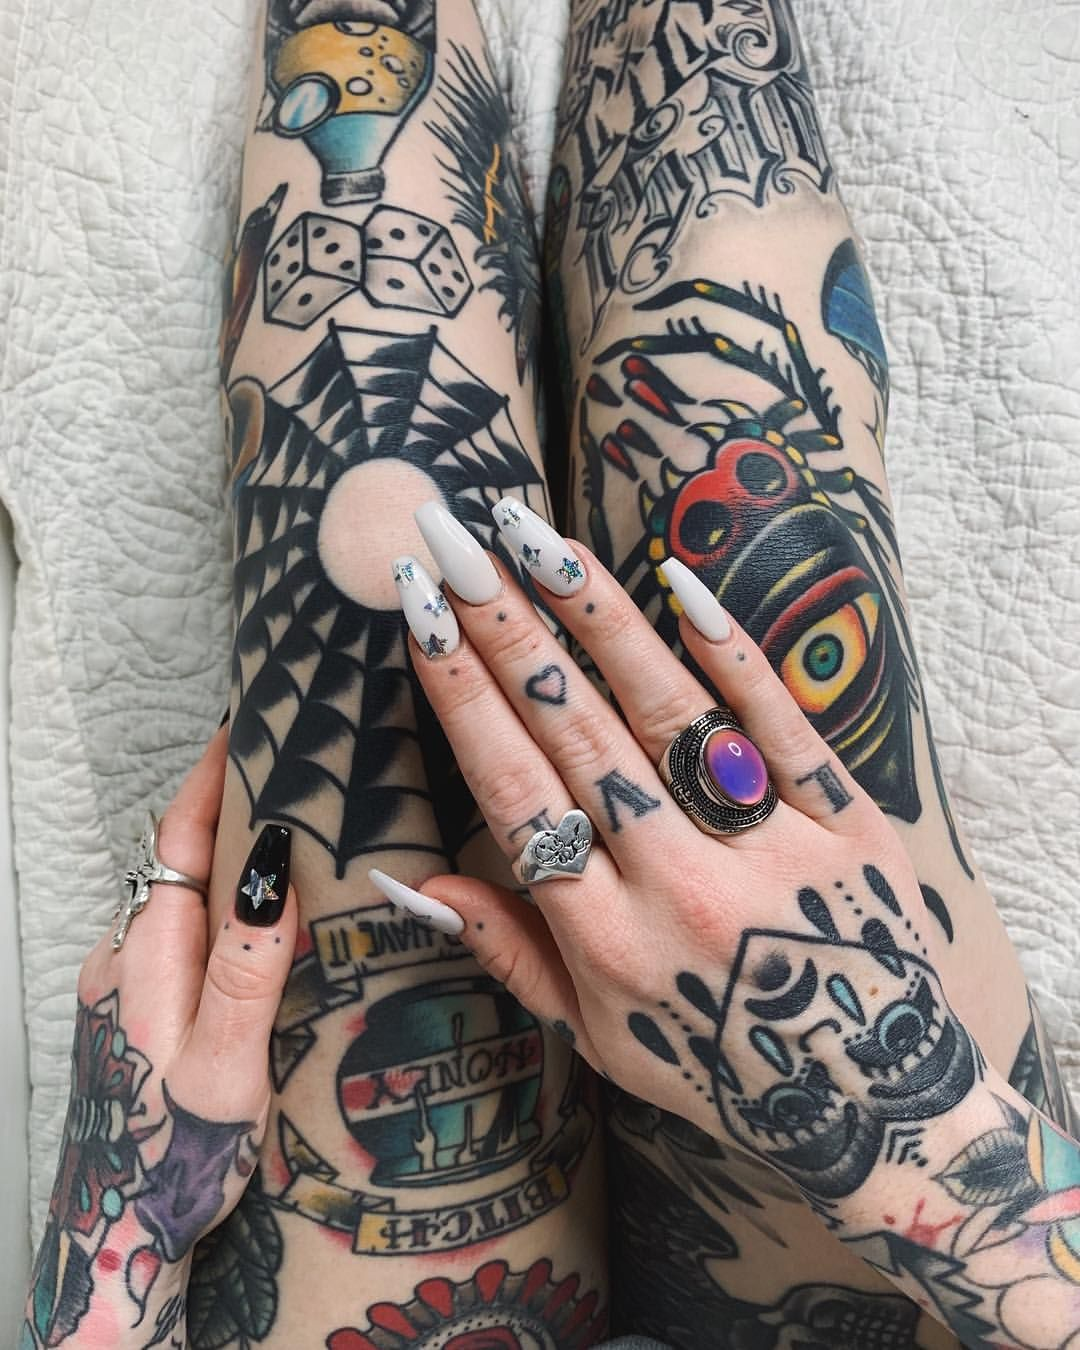 6 982 Curtidas 54 Comentarios Cristen Anguish Cristen Anguish No Instagram I Took This Picture With My Nose Traditional Tattoo Hand Tattoos Tattoos